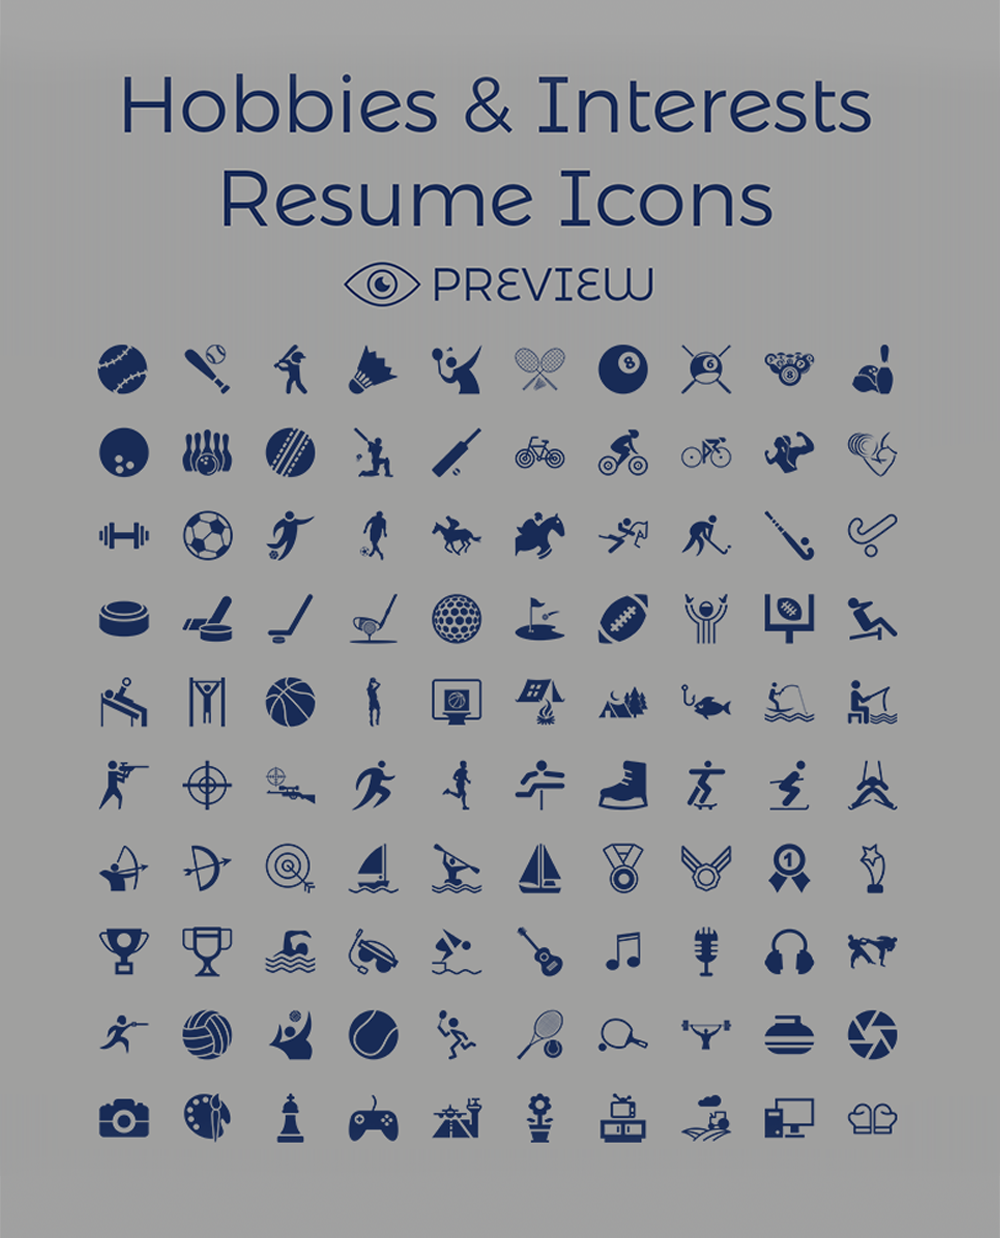 Creative Resume (CV) Design, Cover Letter Template, 4 PSD Mock-Ups & 100 Resume Icons (5)